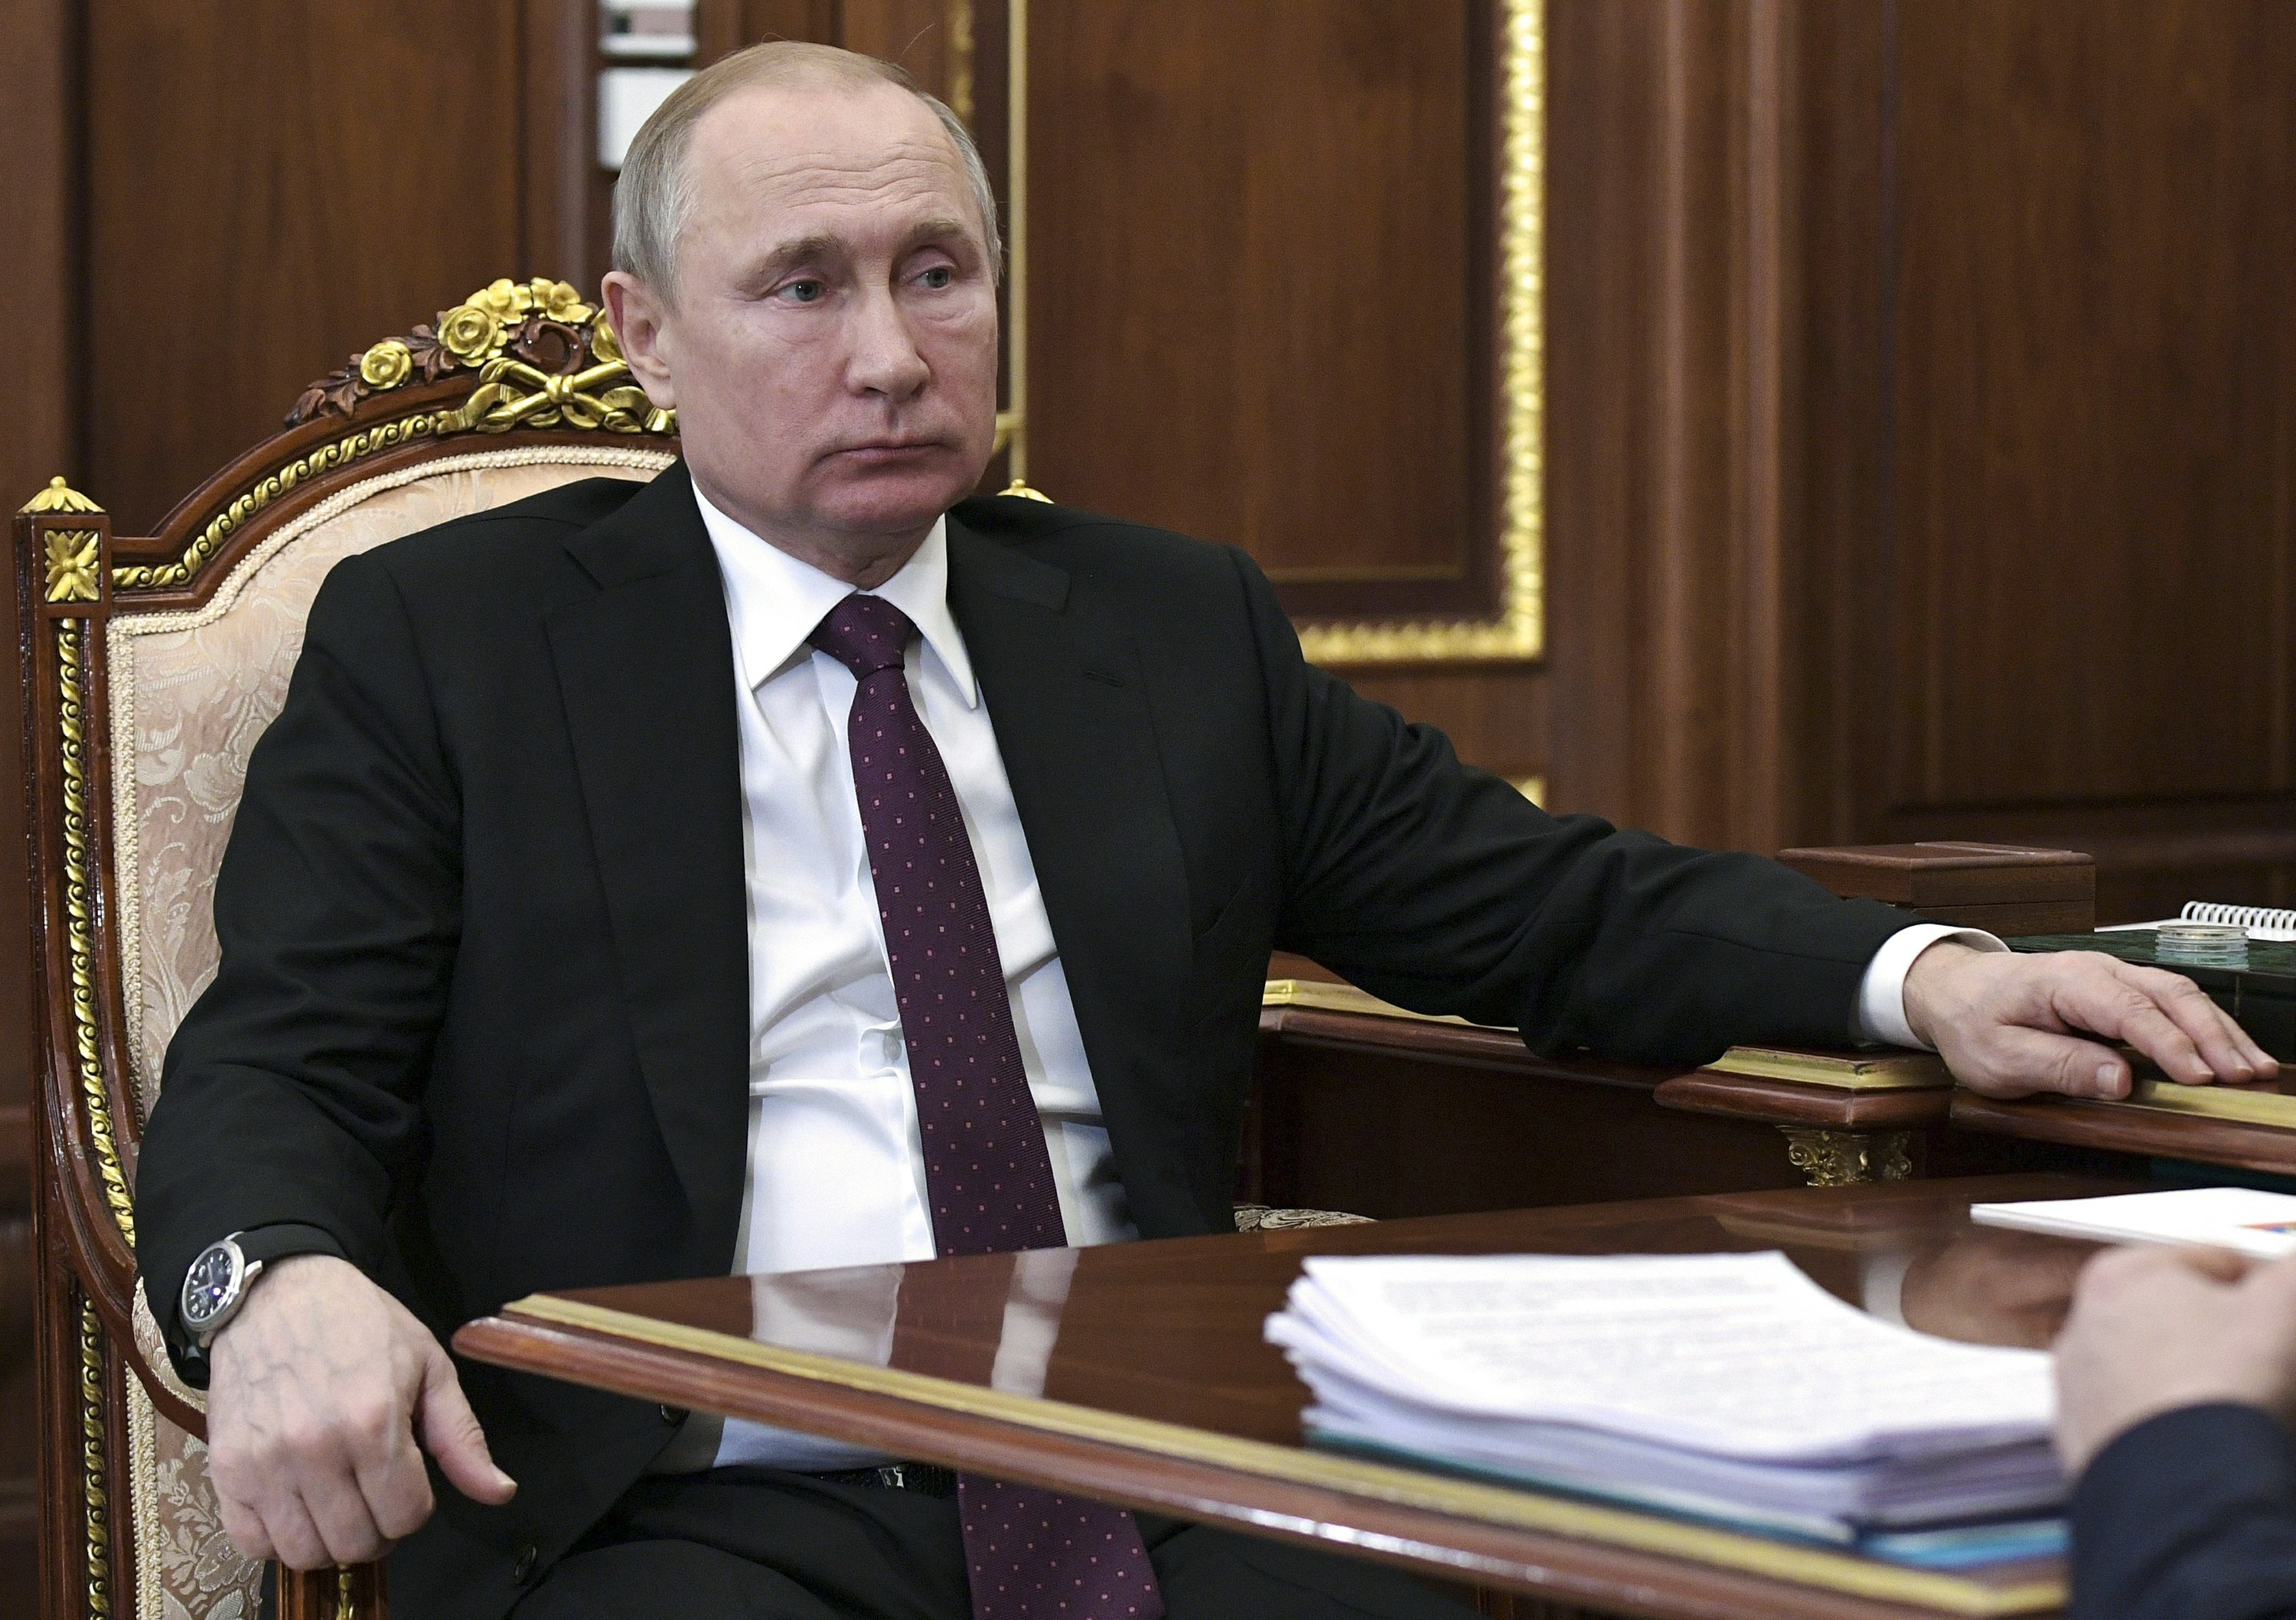 Official: Russia's political system a good model for others